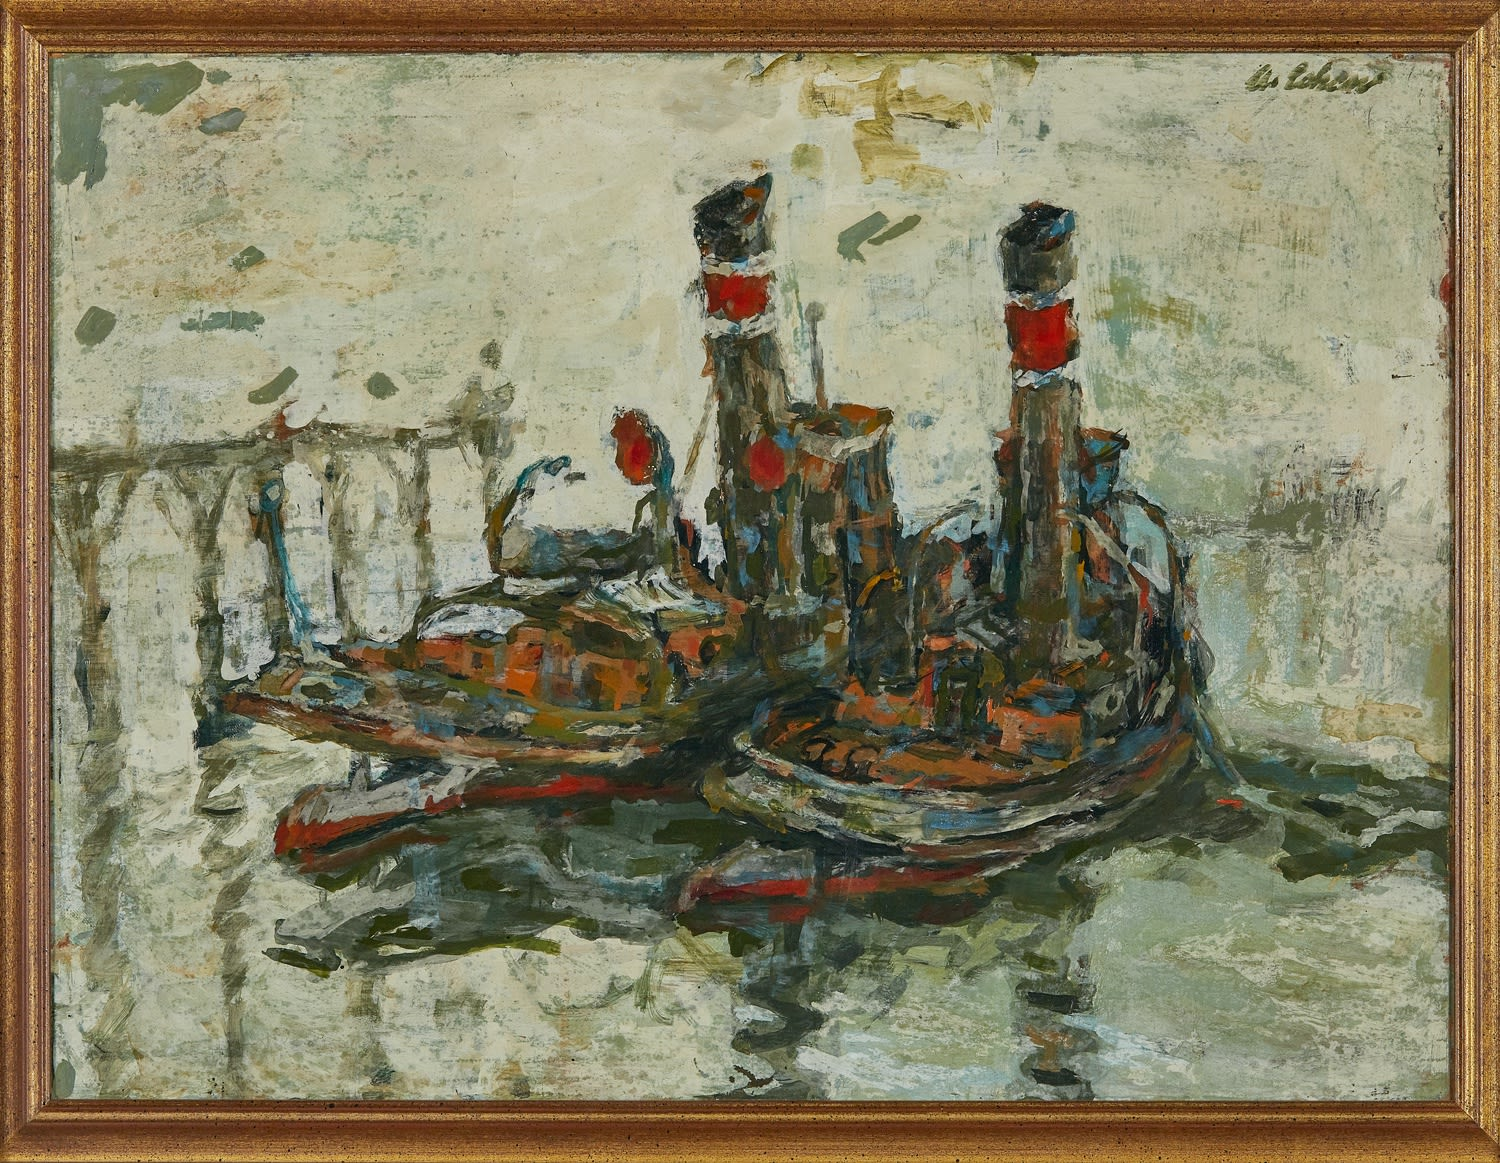 Alfred Cohen (1920-2001) Remorqueurs (Tugboats) c. 1958 Oil on board 45.7 x 60.9 cm Private Collection © Estate of Alfred Cohen 2020